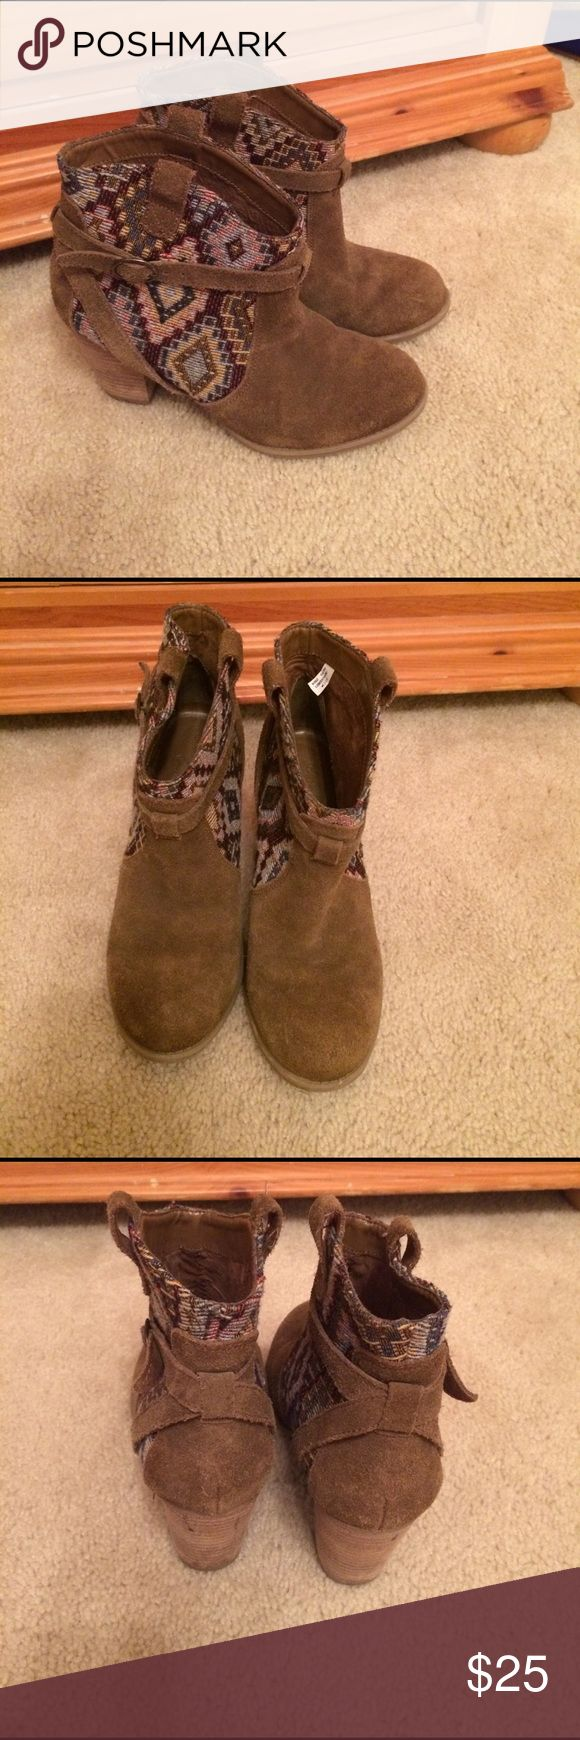 American Eagle Outfitter suede ankle boots 6 American Eagle Outfitter suede ankle boots 6. In good slightly used condition. Aztec print. Comes from smoke free and pet free home. American Eagle Outfitters Shoes Ankle Boots & Booties